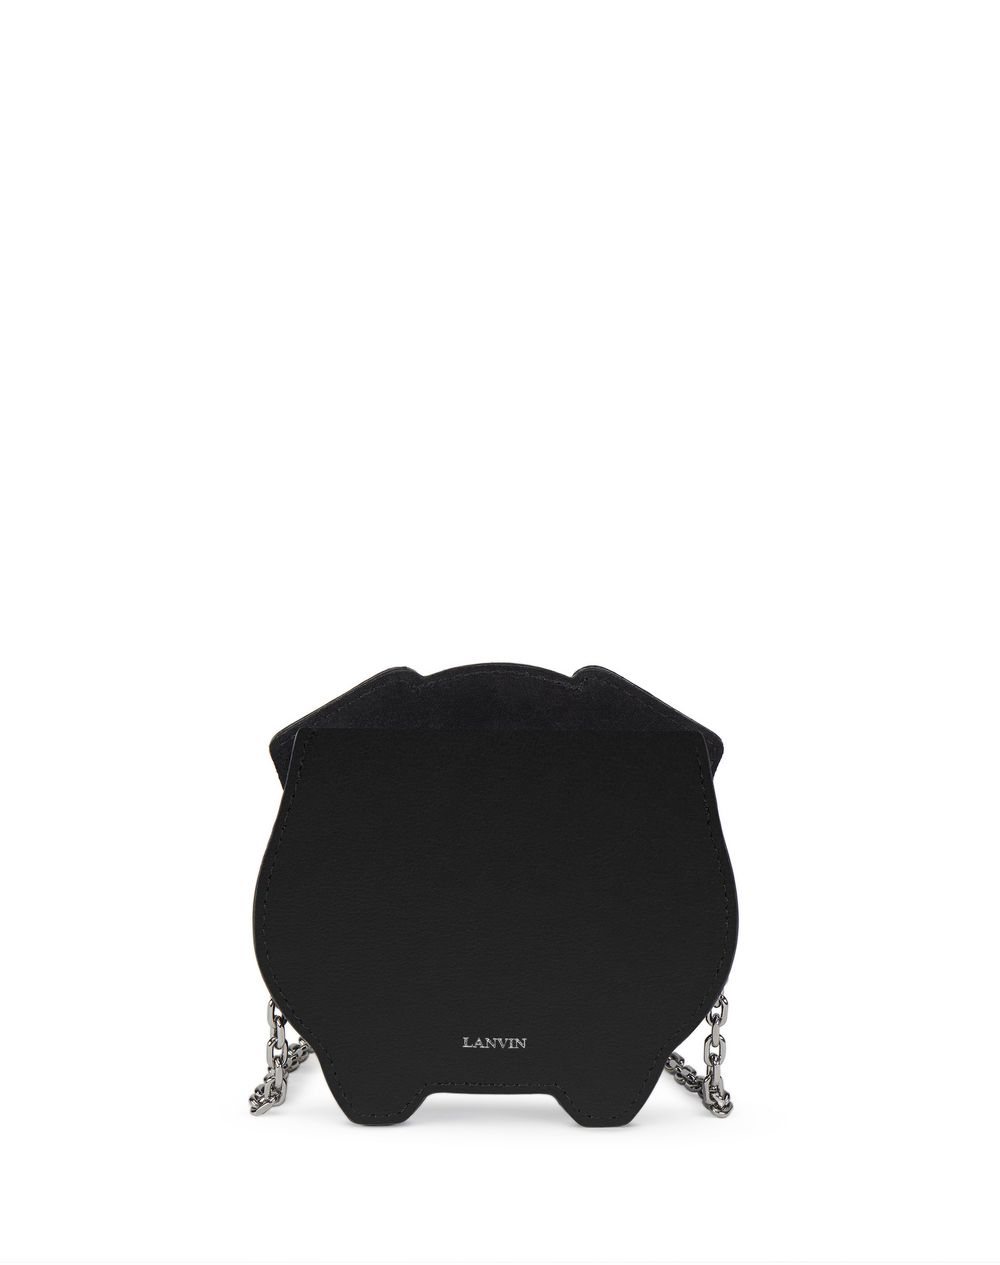 BLACK EMBROIDERED COIN PURSE BAG - Lanvin